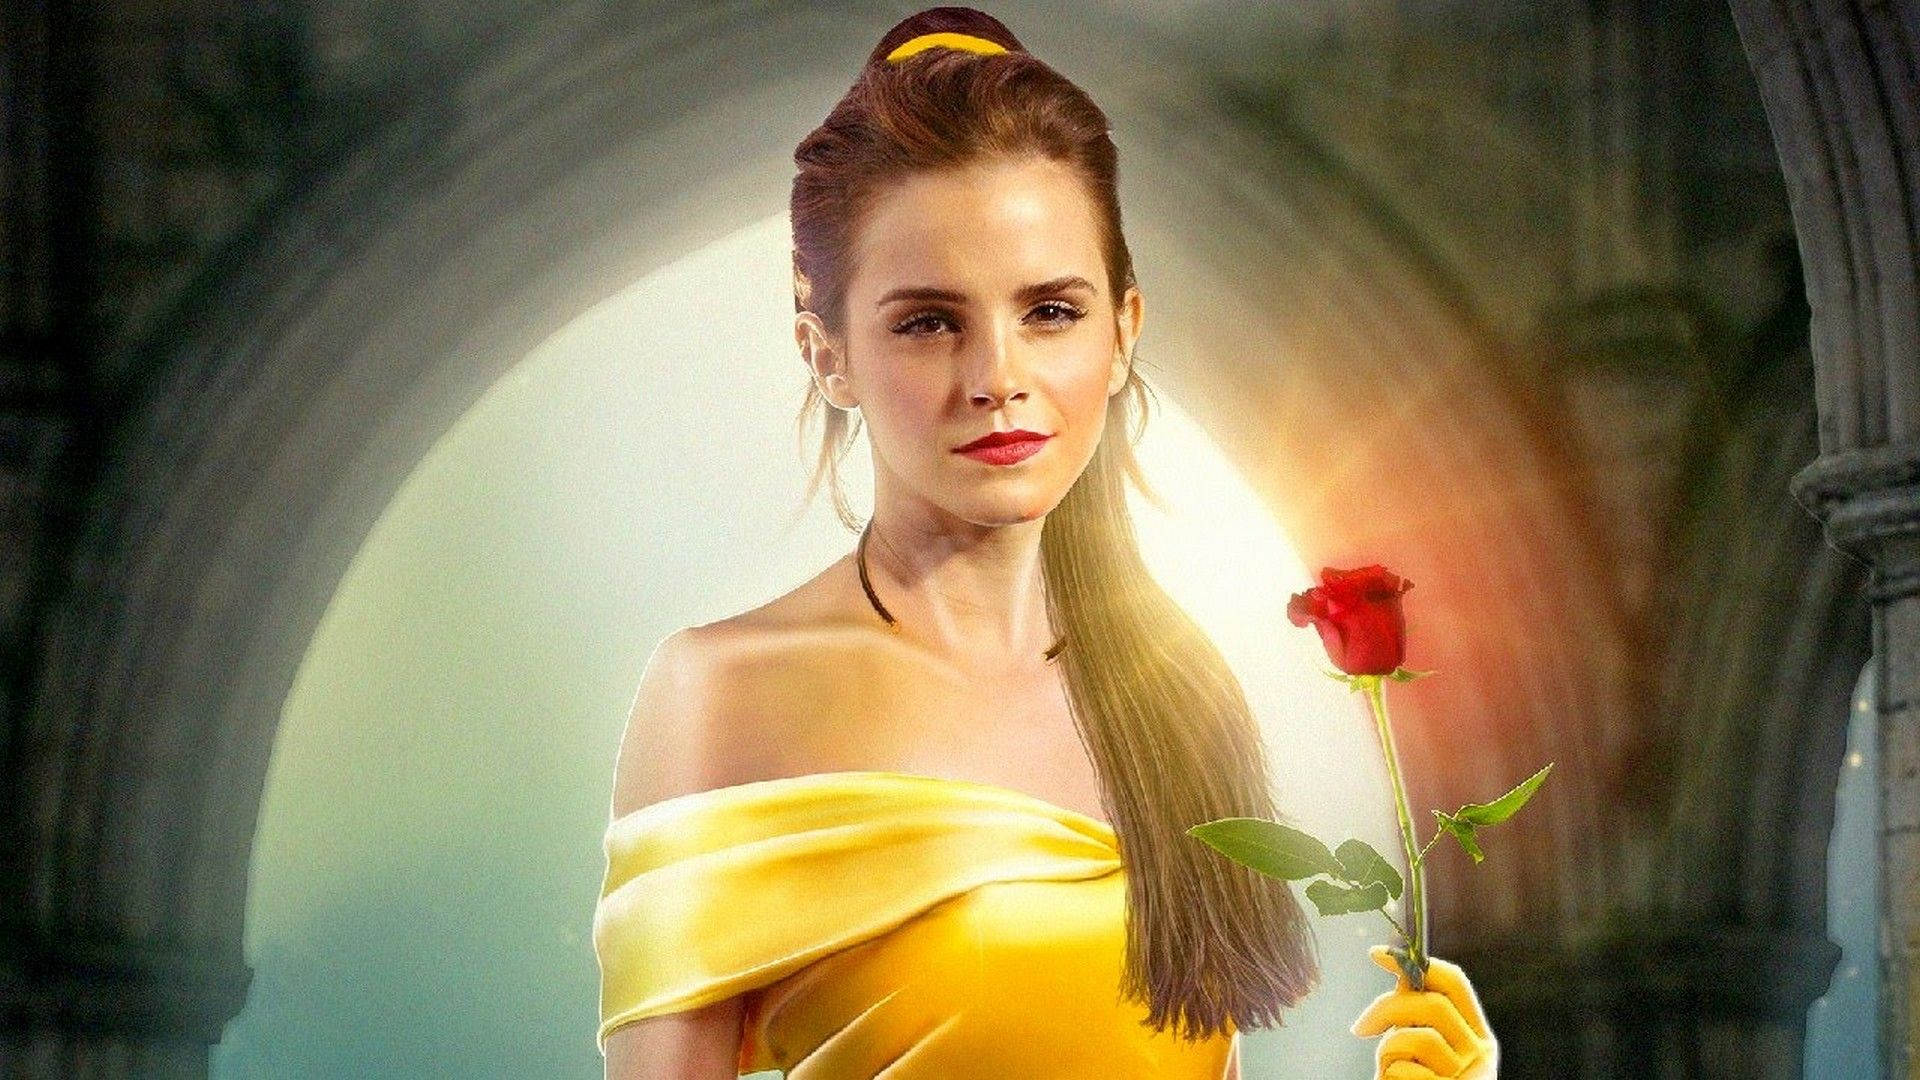 beauty and the beast wallpaper free | beauty and the beast